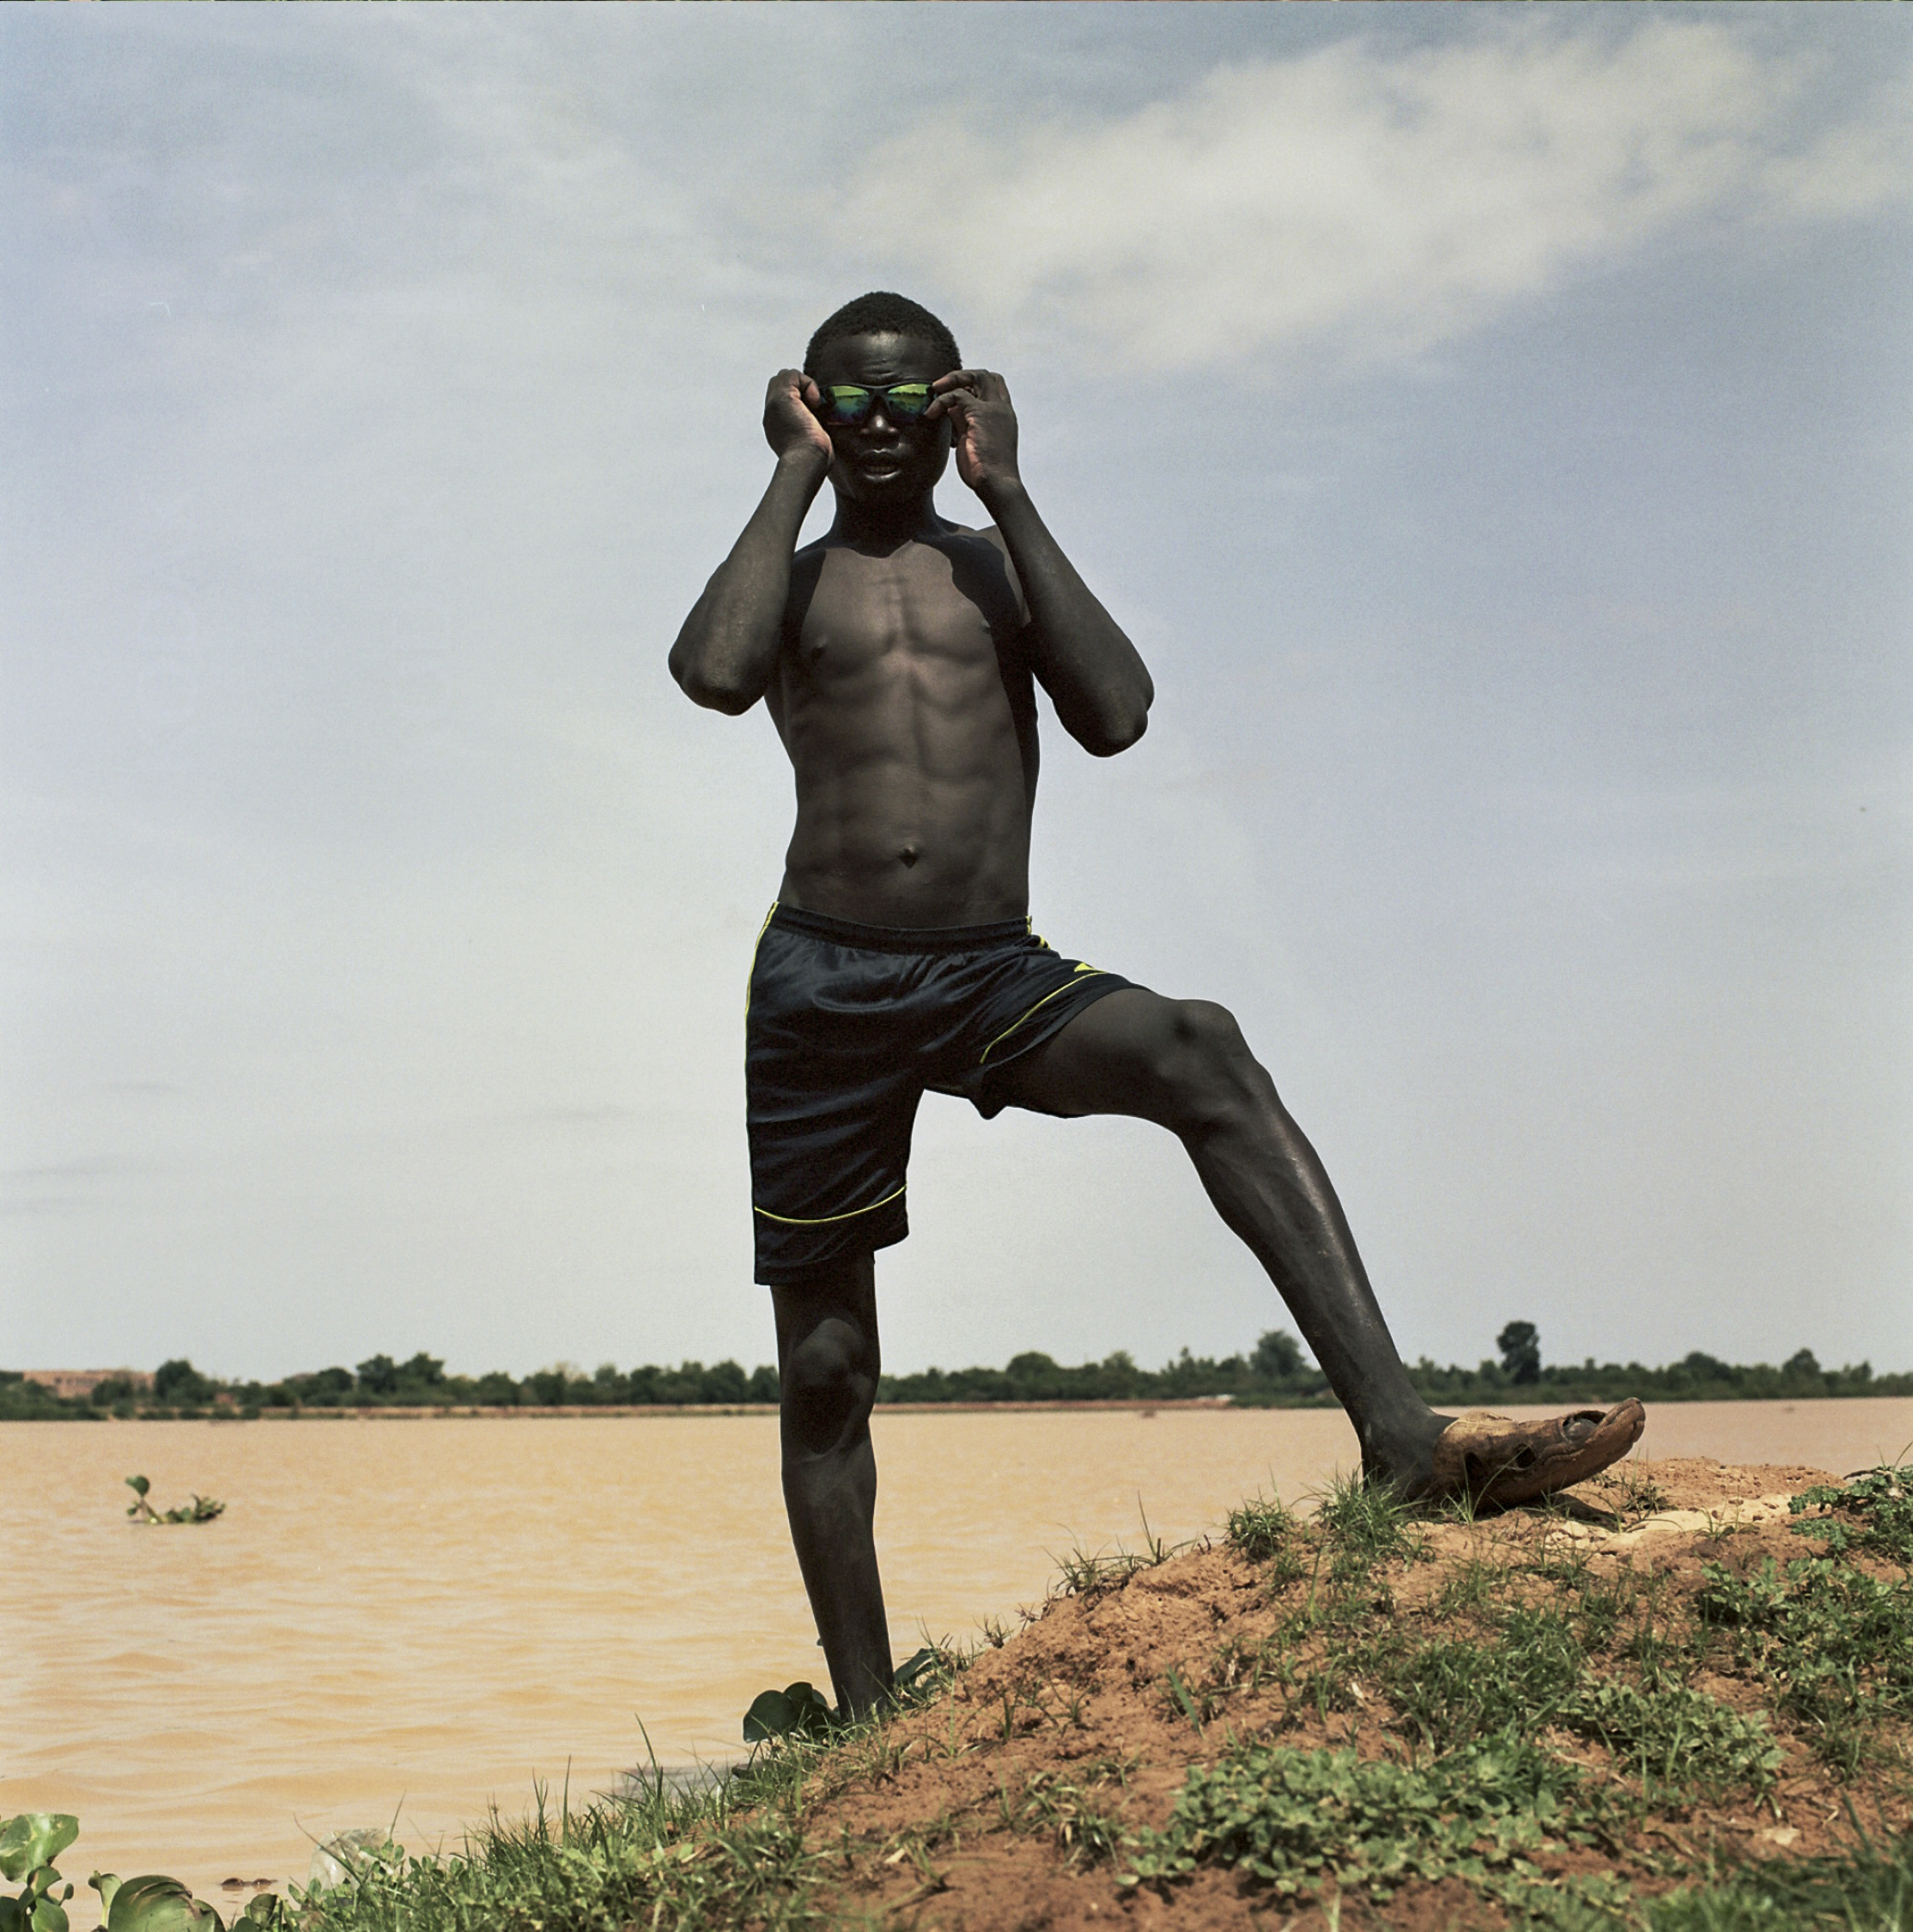 A young boy puts on his sunglasses on the banks of the Niger River.